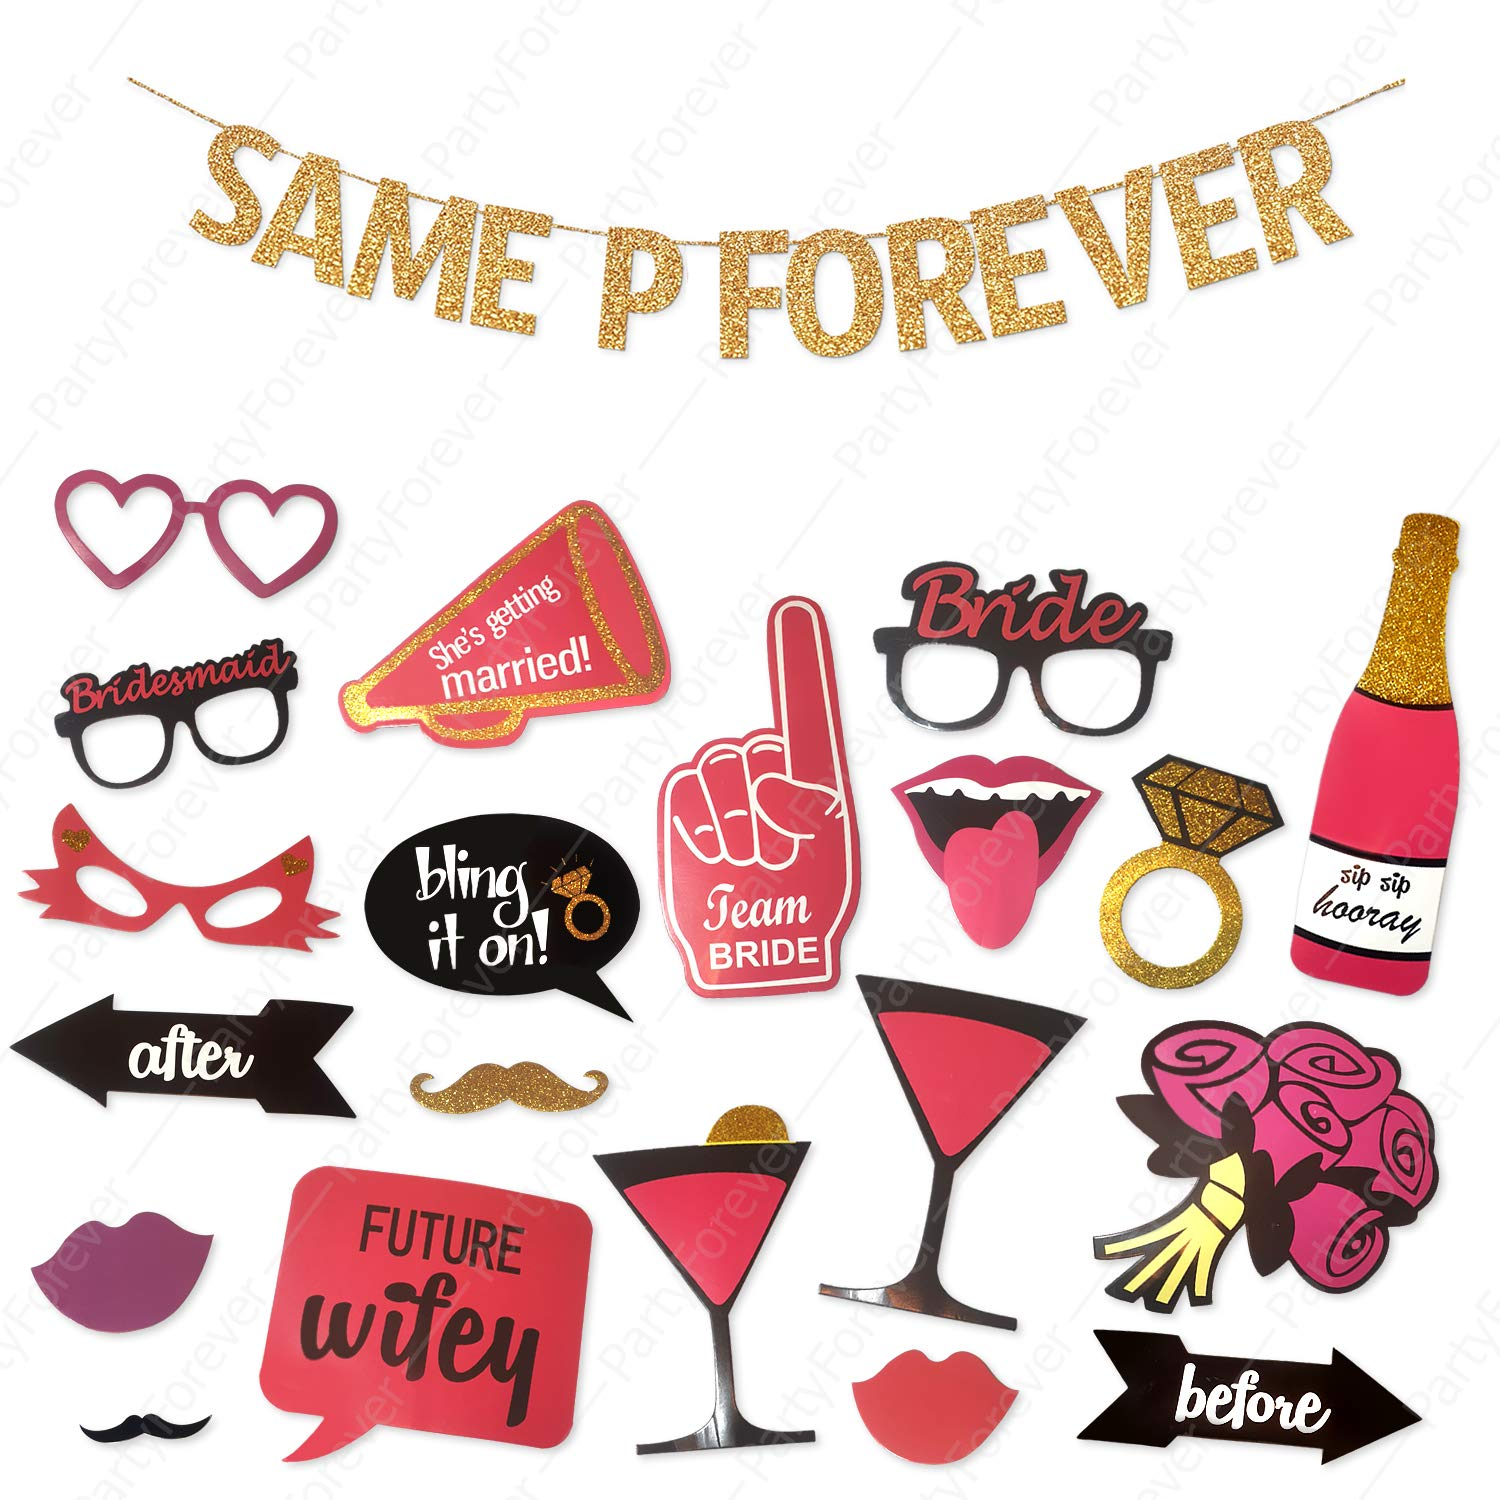 Same P Forever Banner Bachelorette Party Decorations Kit with Hen Party Photo Booth Props (20-Piece), Banner Sign with Bridal Shower Supplies, Hen Party Decorations Kit